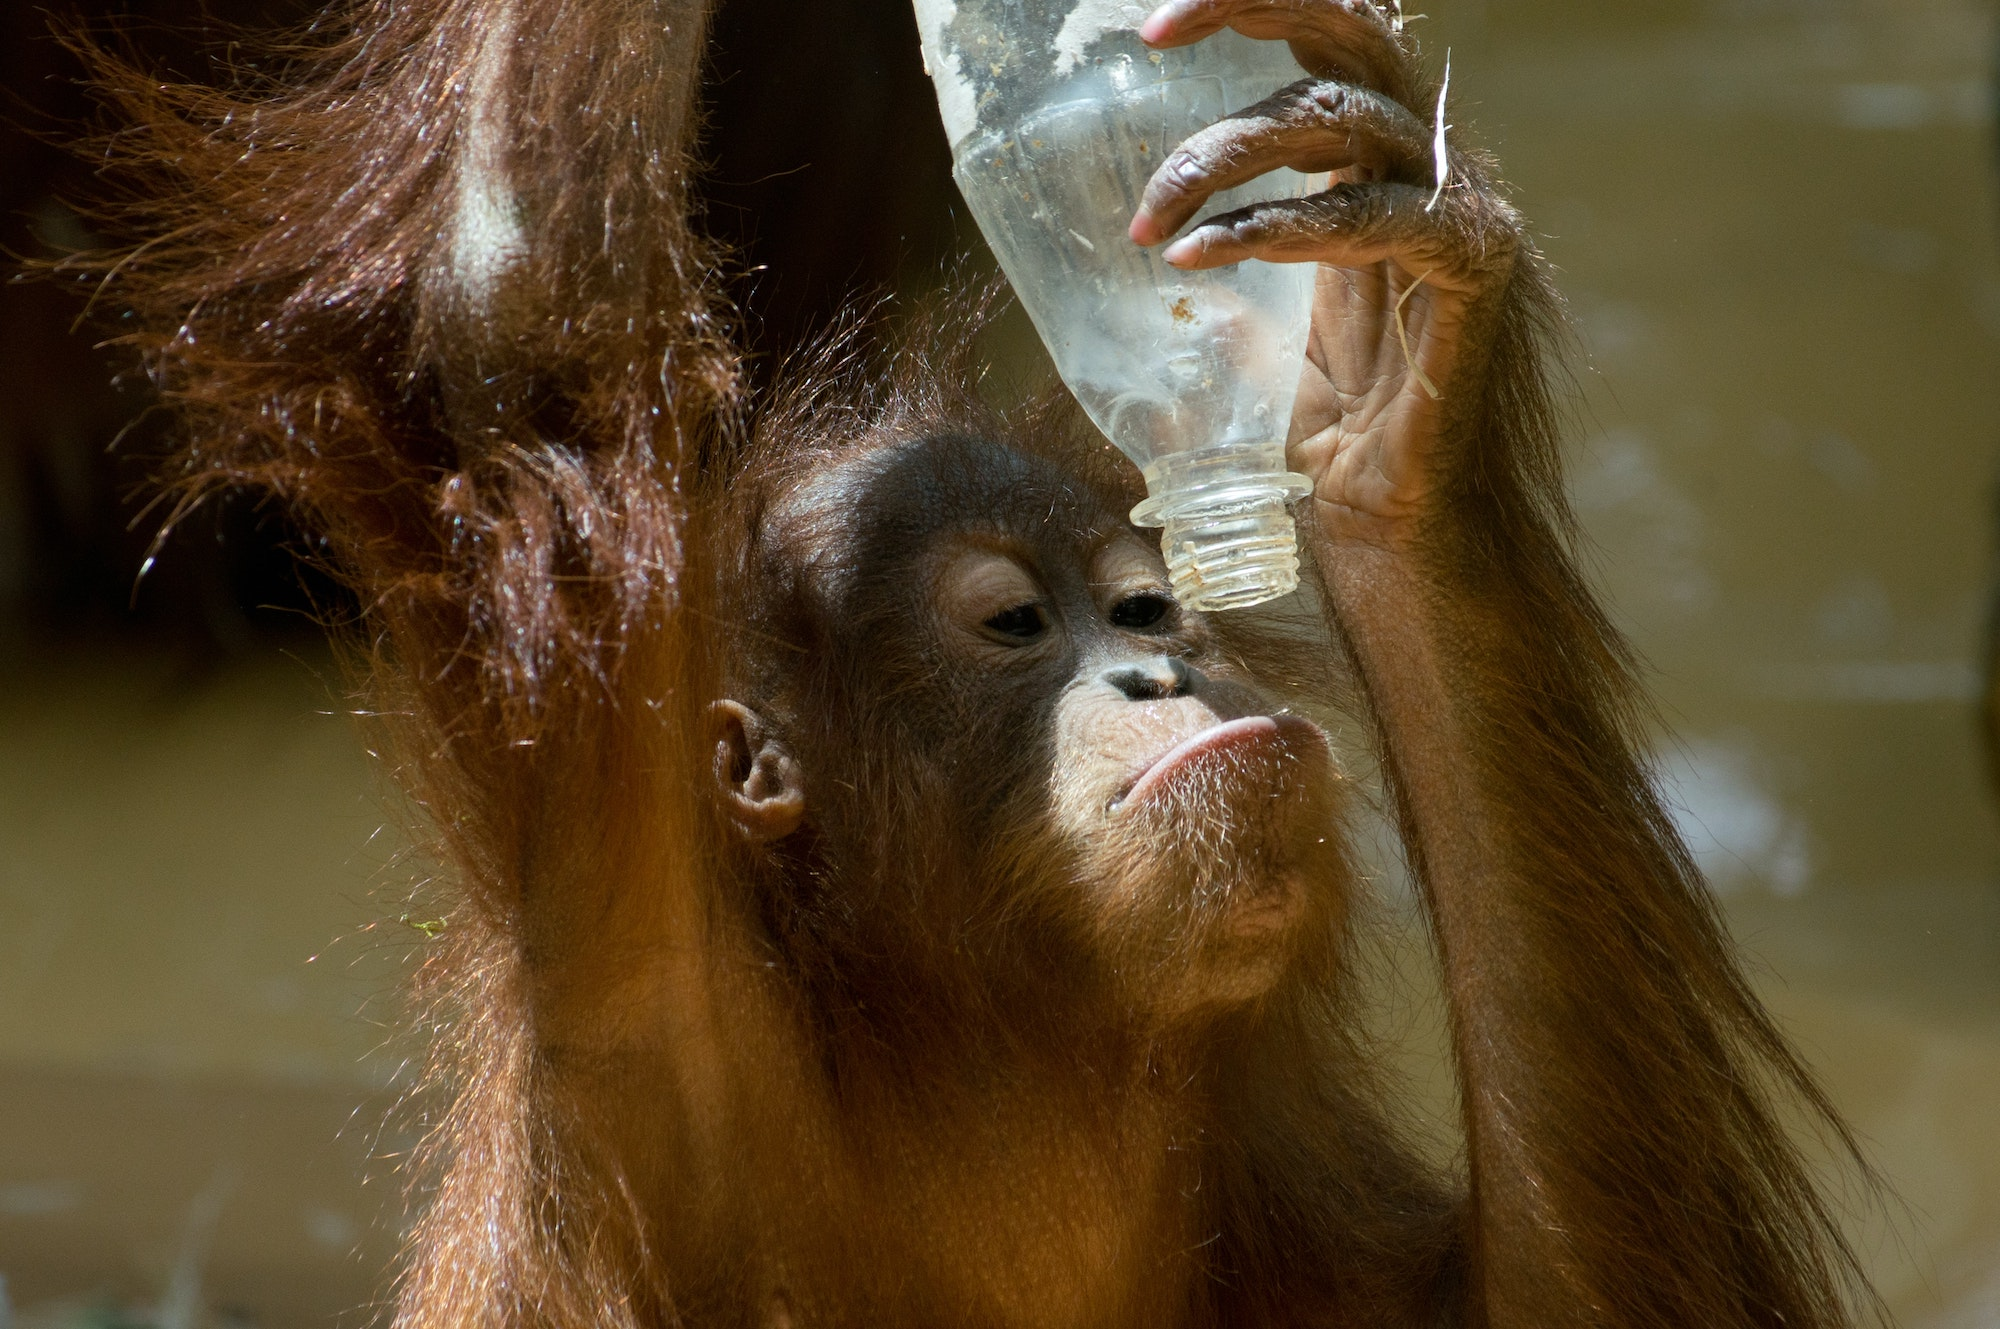 Palm Oil and the Orangutan: What You Need to Know